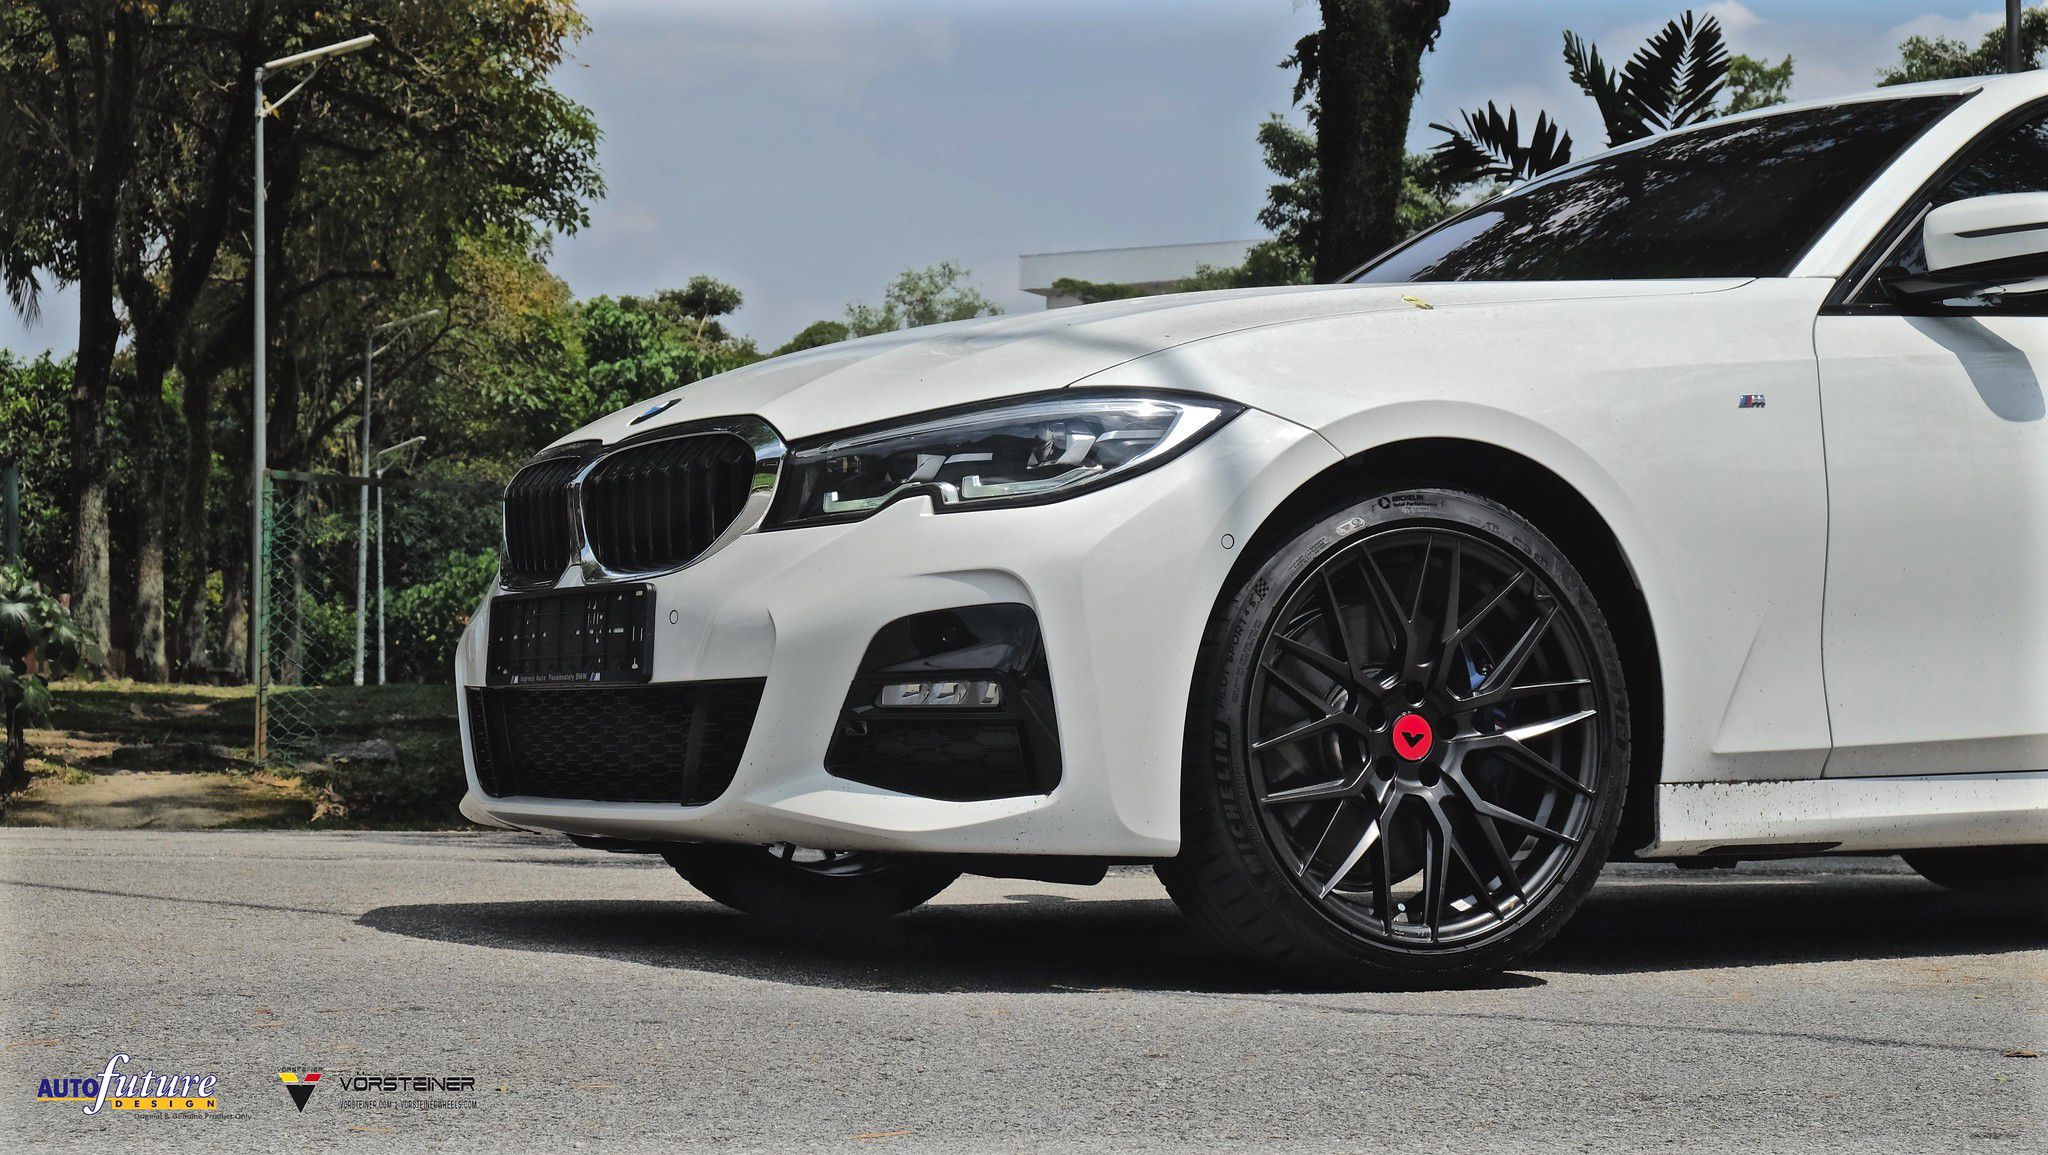 2018 BMW 3 Series >> BMW G20 on black Vorsteiner wheels | HD Image #10